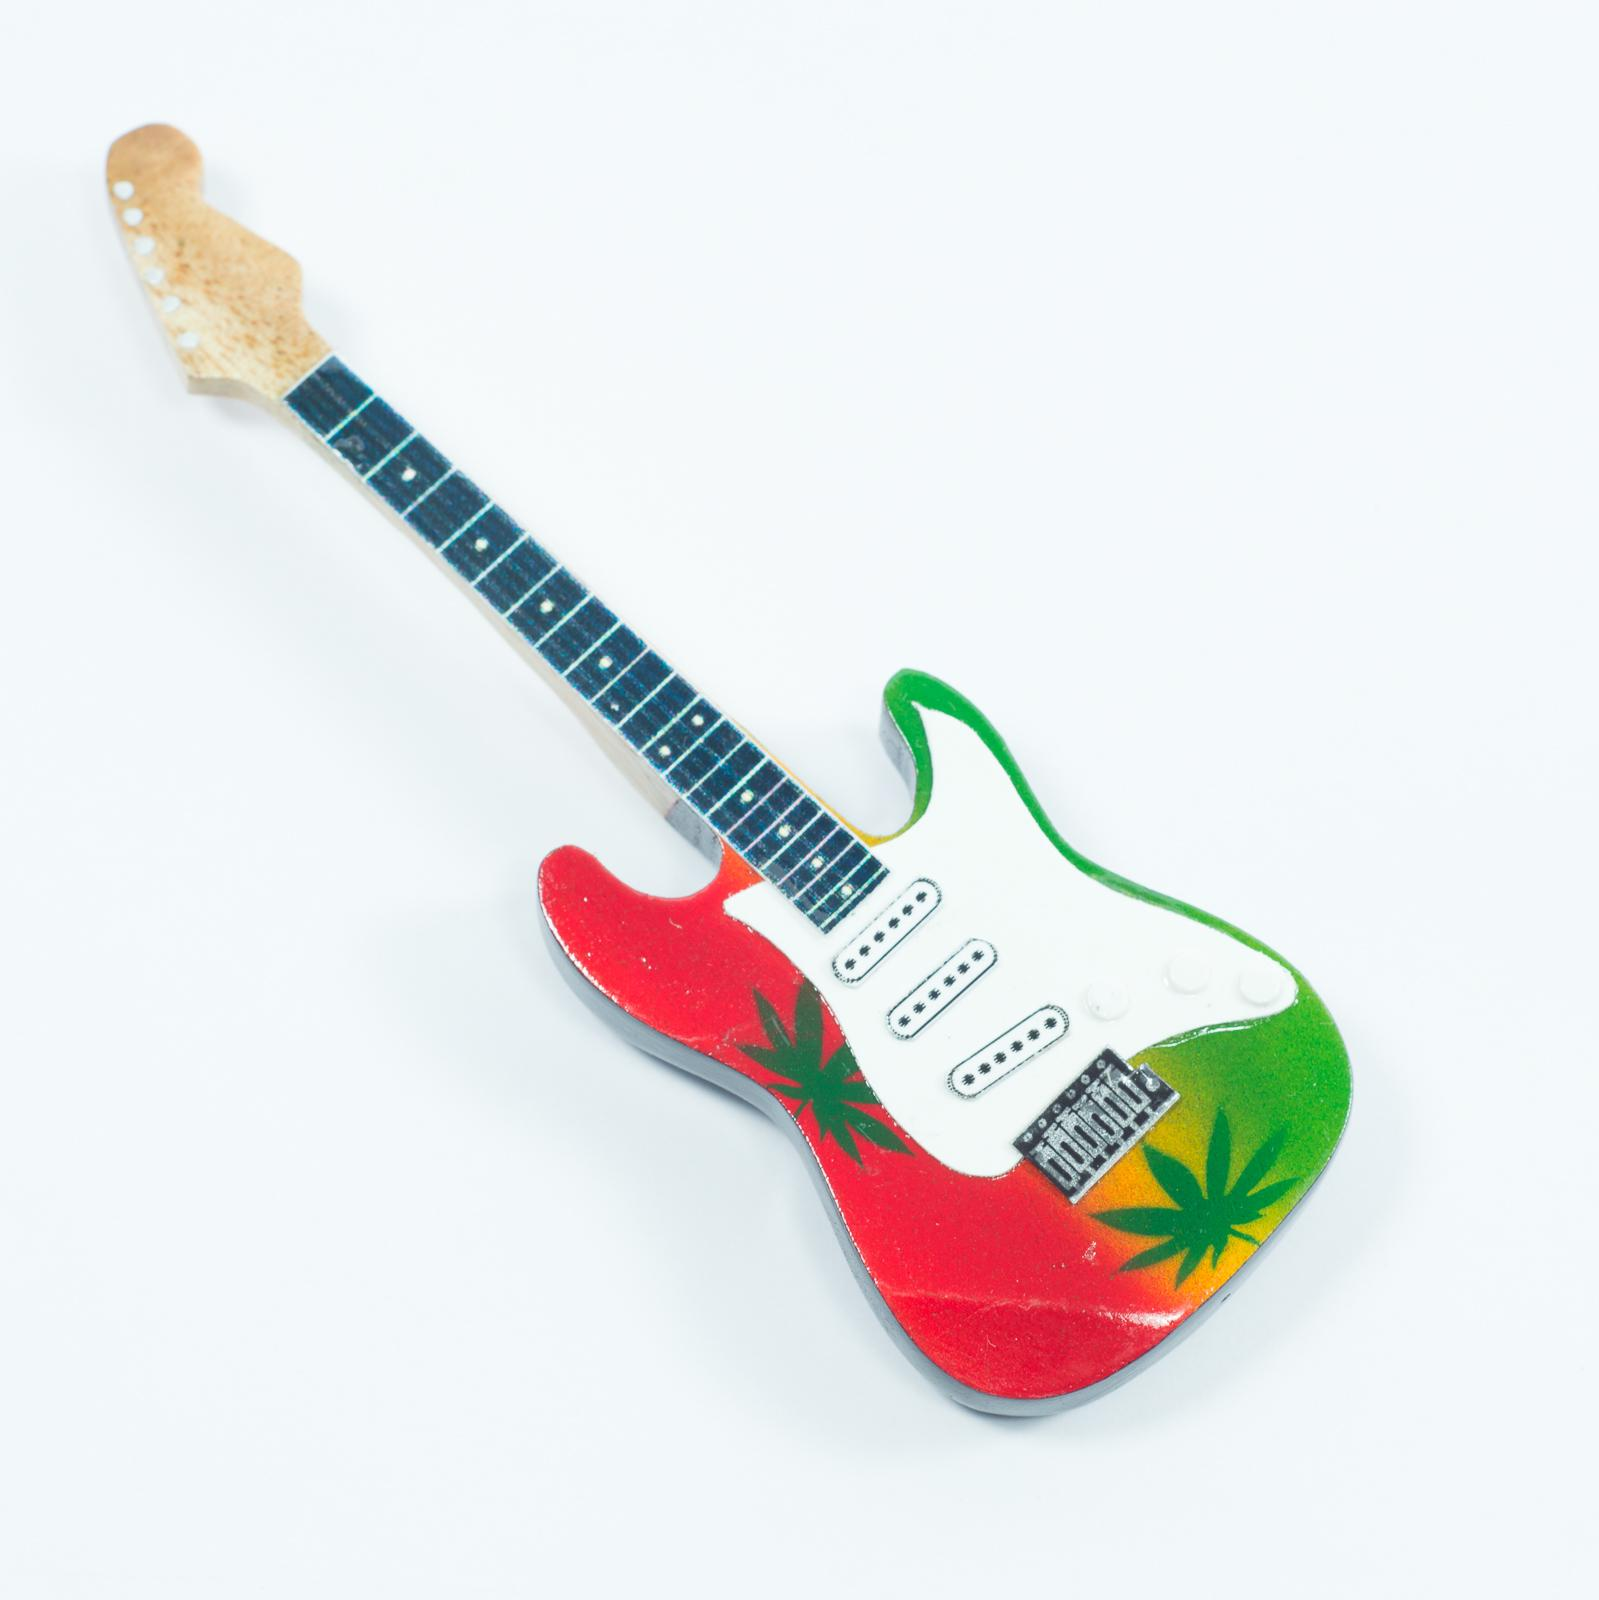 Guitar Shaped Magnet For Fridge - Marijuana Theme